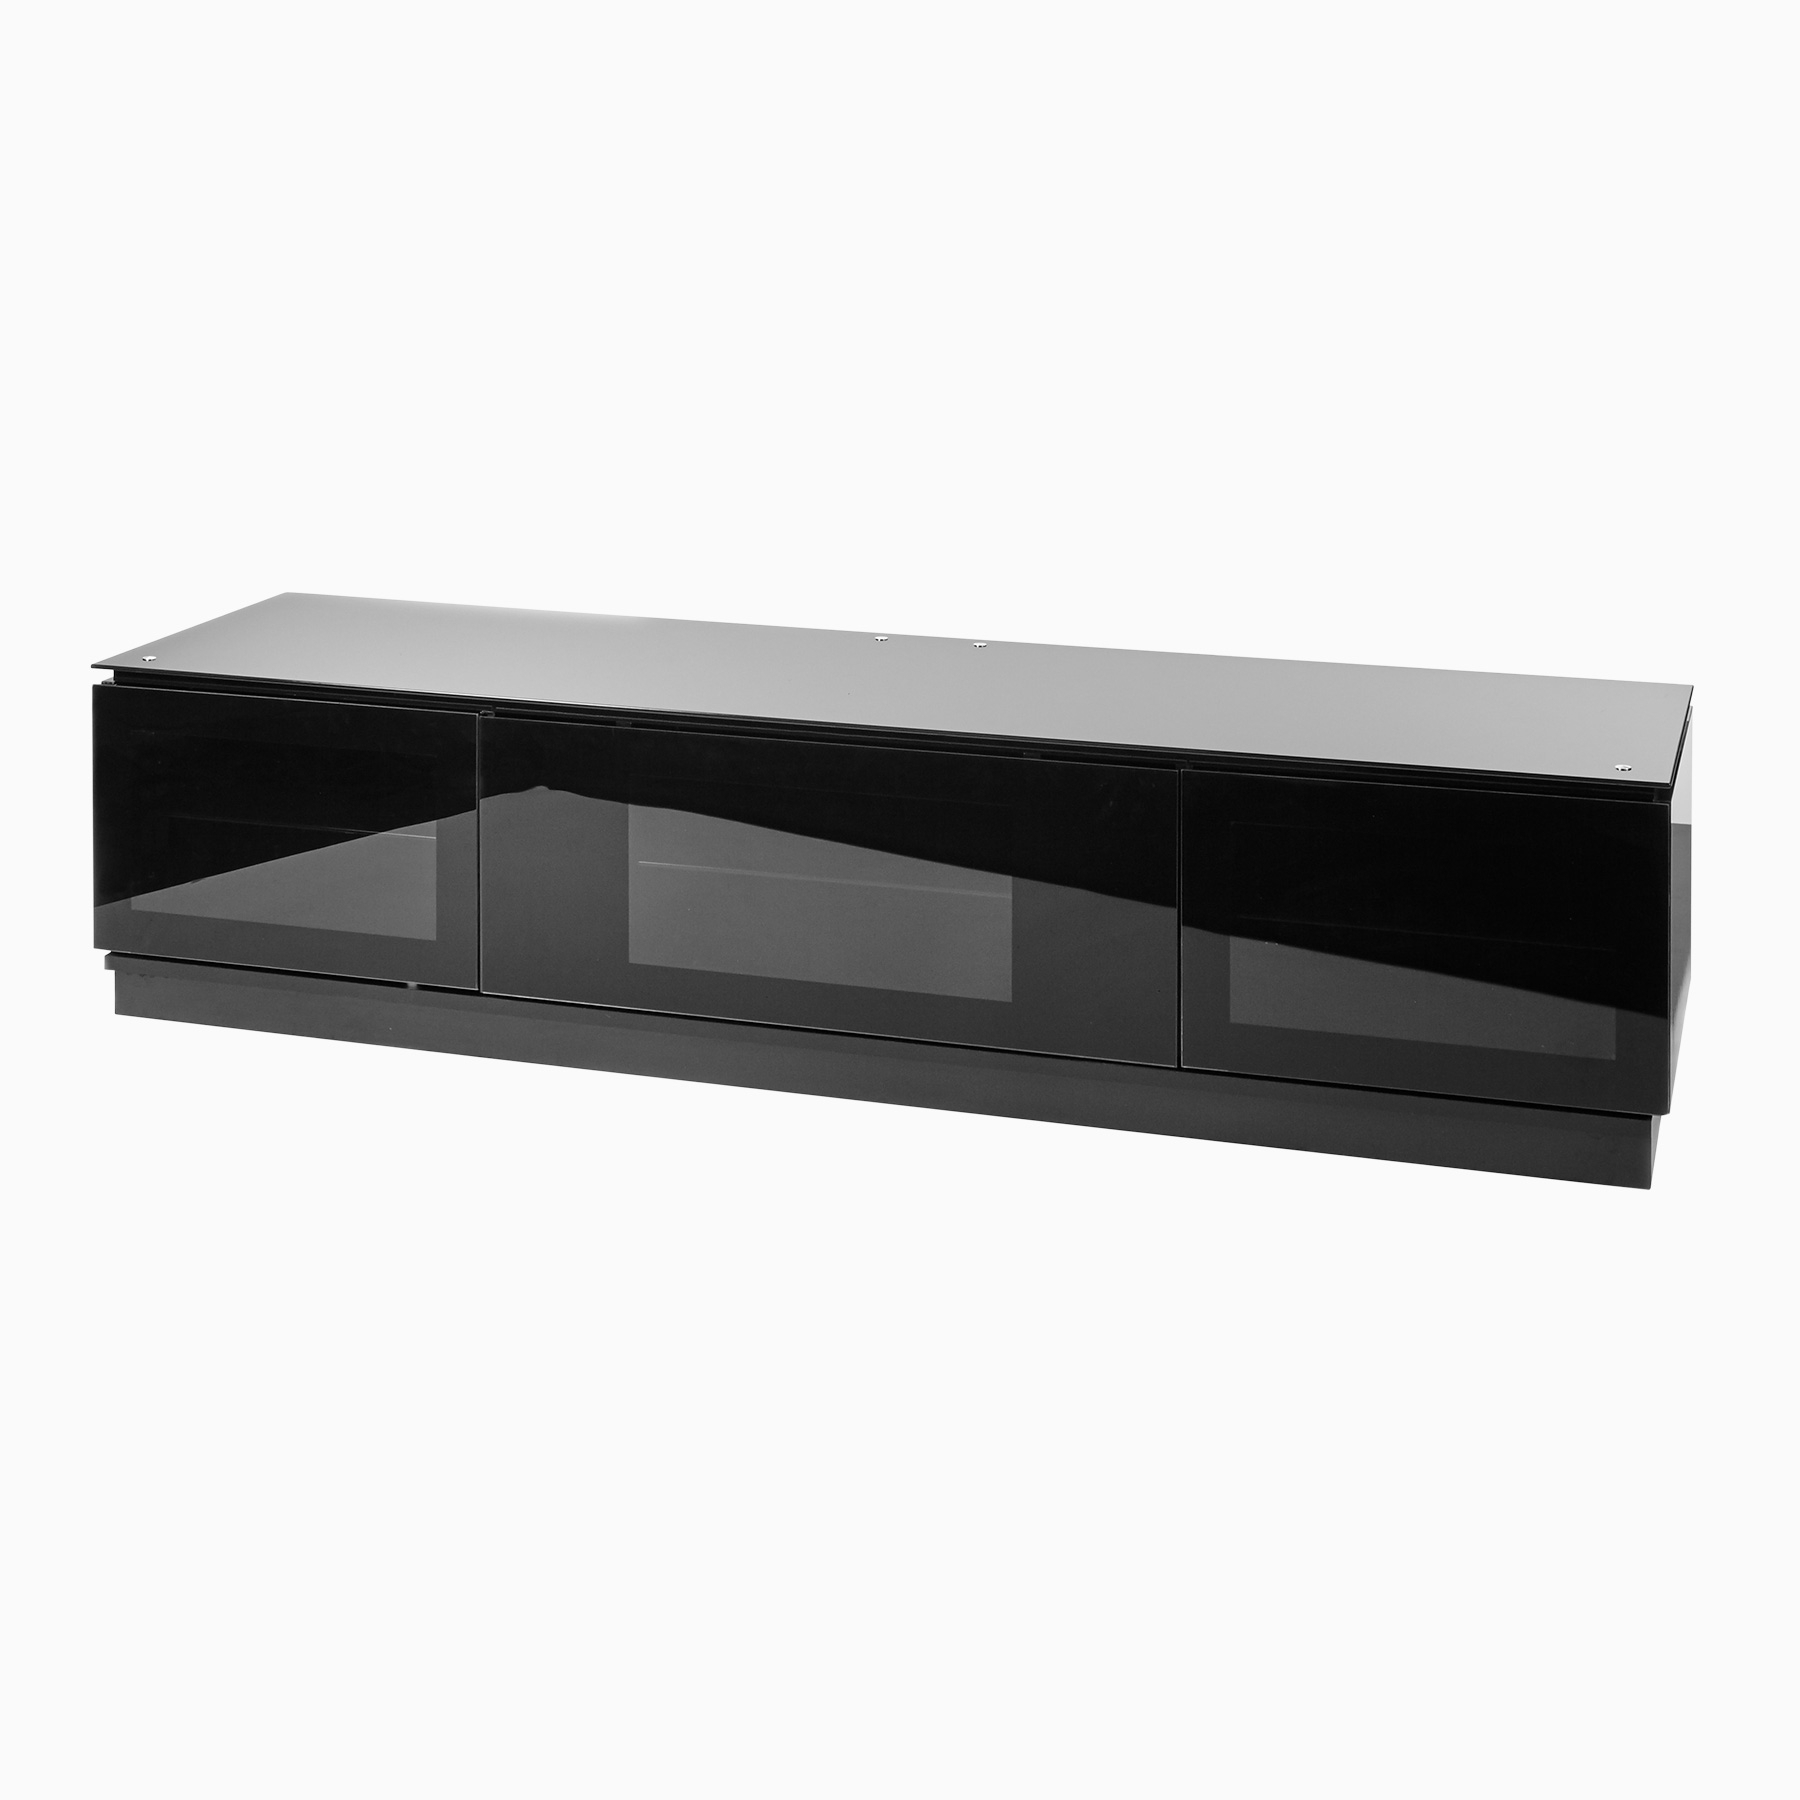 Widely Used Black Gloss Tv Unit Up To 80 Inch Flat Screen Tv (View 10 of 20)